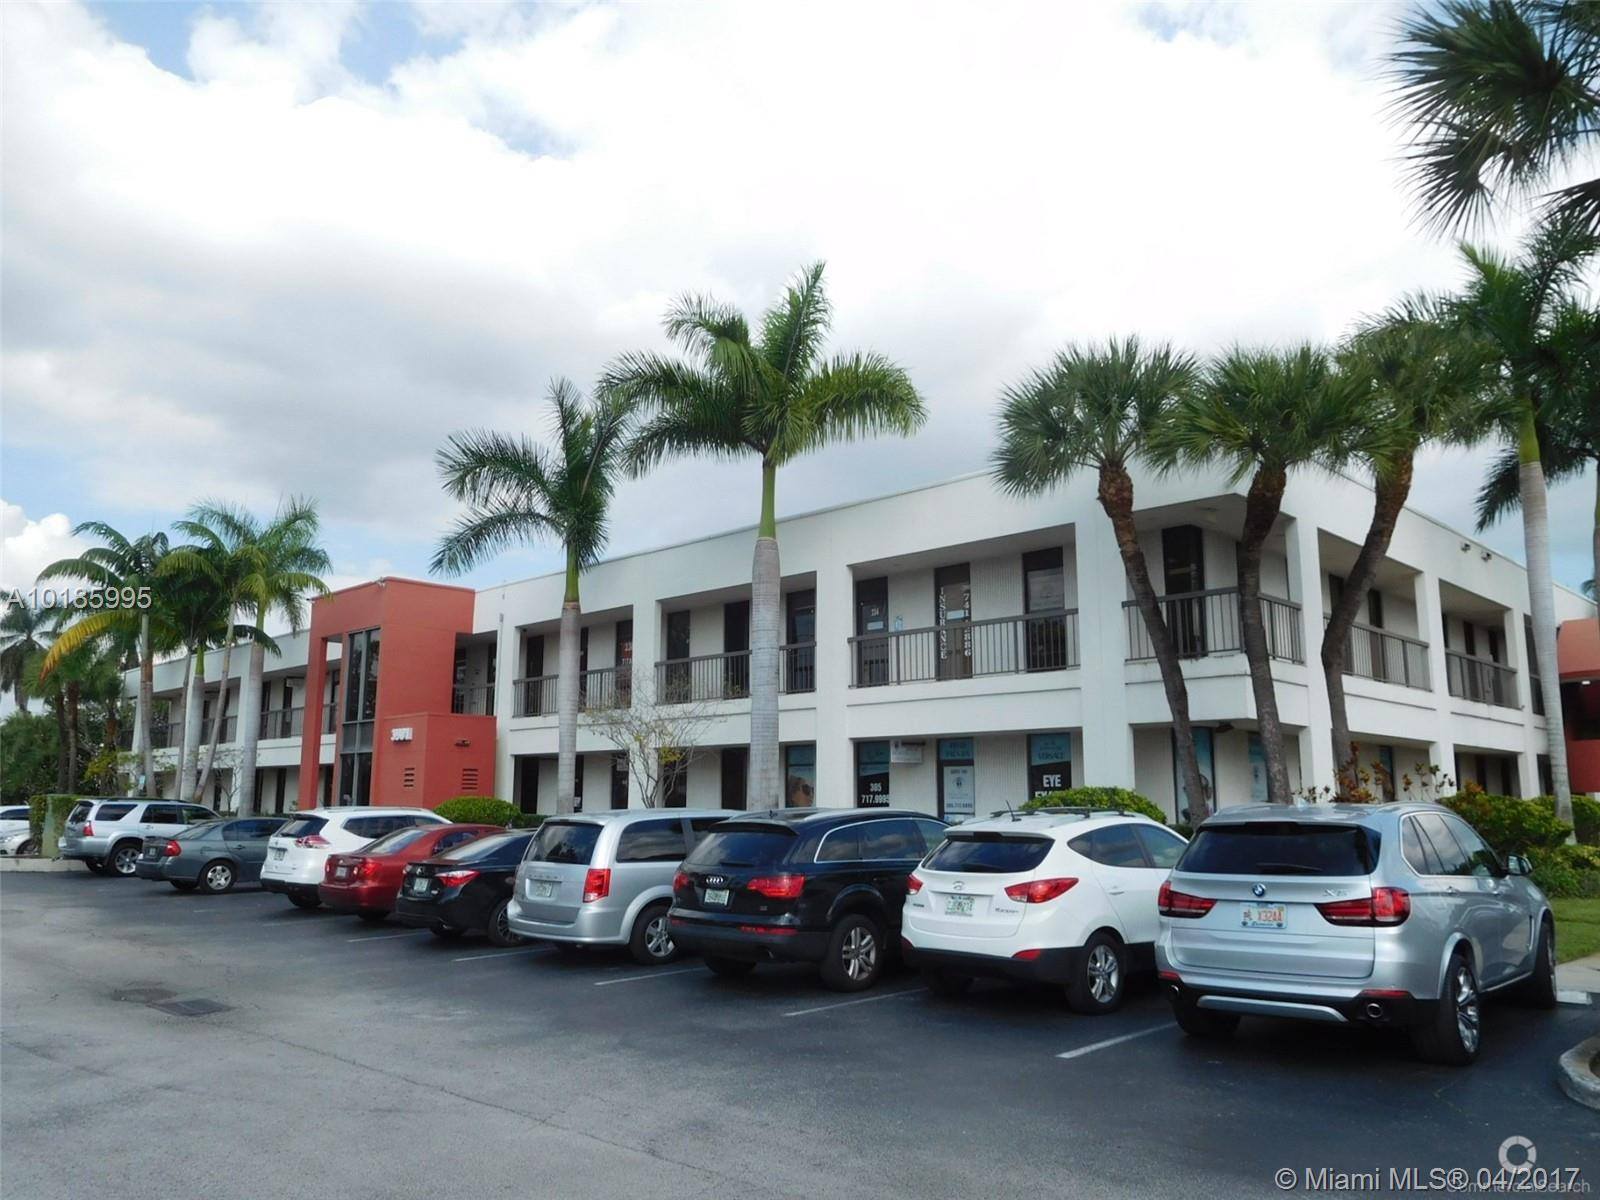 3901 NW 79th Ave # 255, Doral, FL 33166